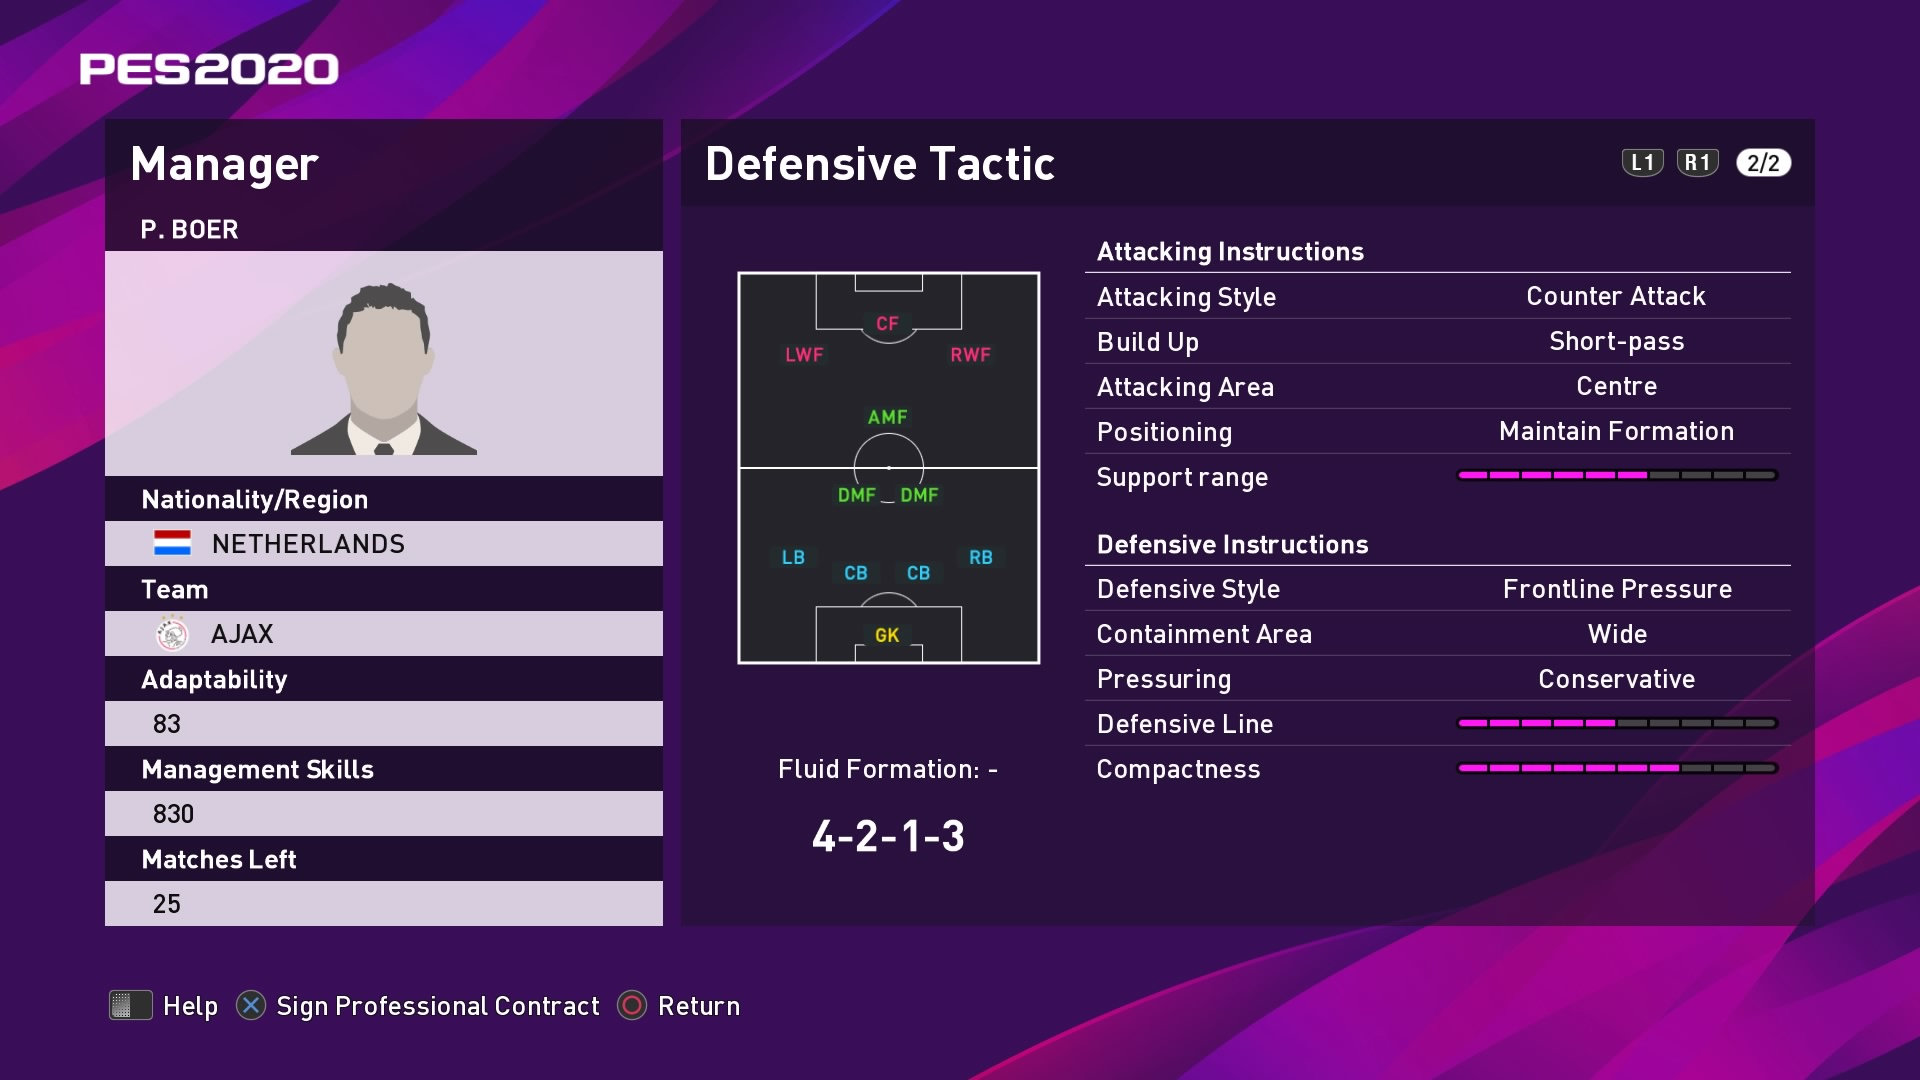 P. Boer (2) (Erik ten Hag) Defensive Tactic in PES 2020 myClub